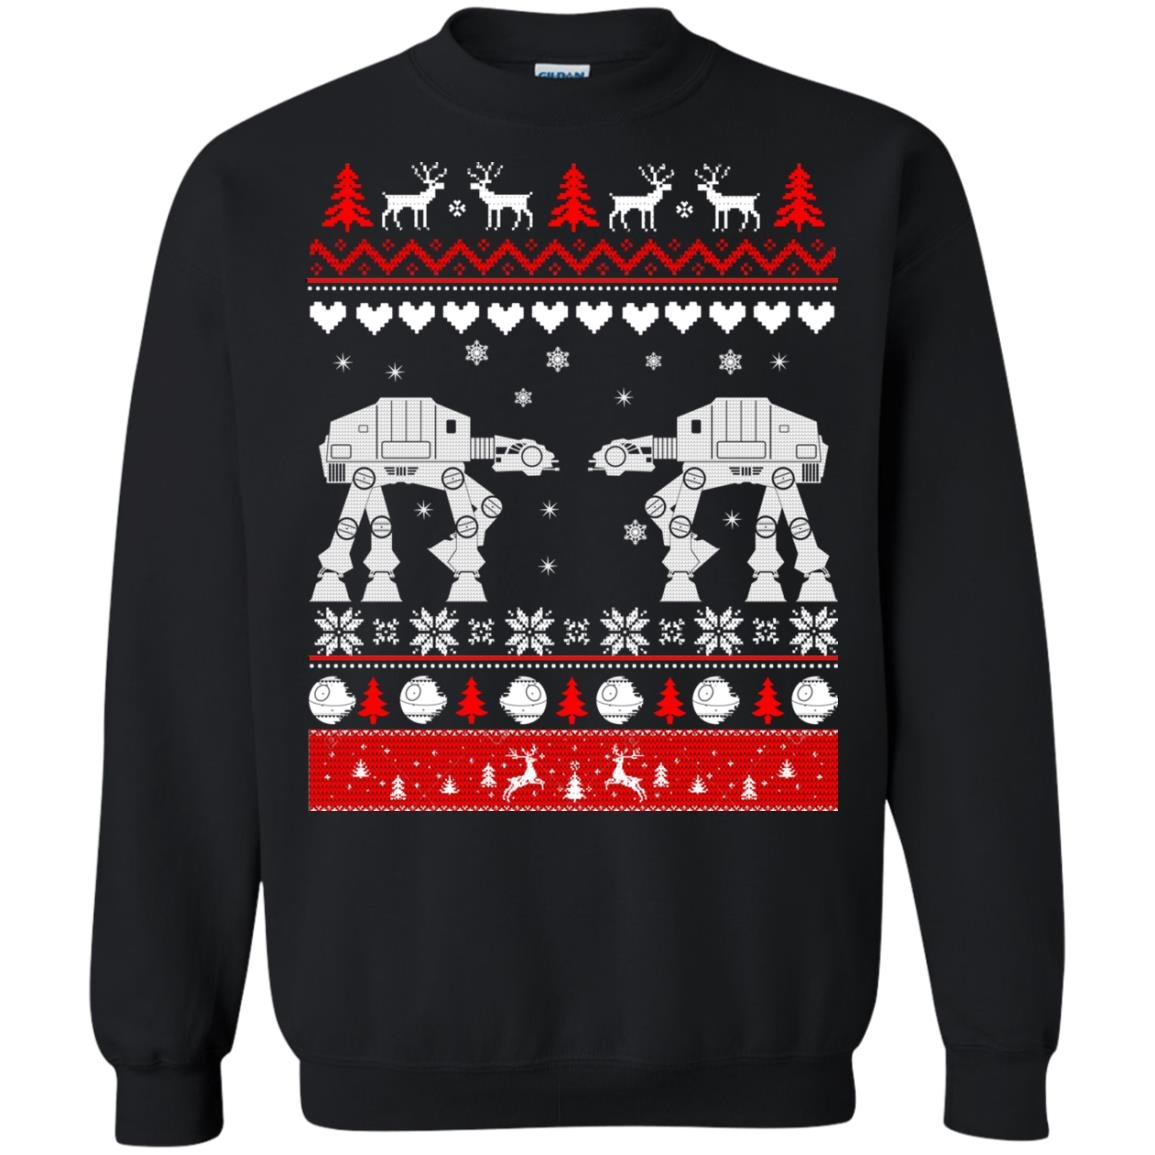 image 1680 - Star Wars AT AT Walker Christmas Sweatshirt, Hoodie